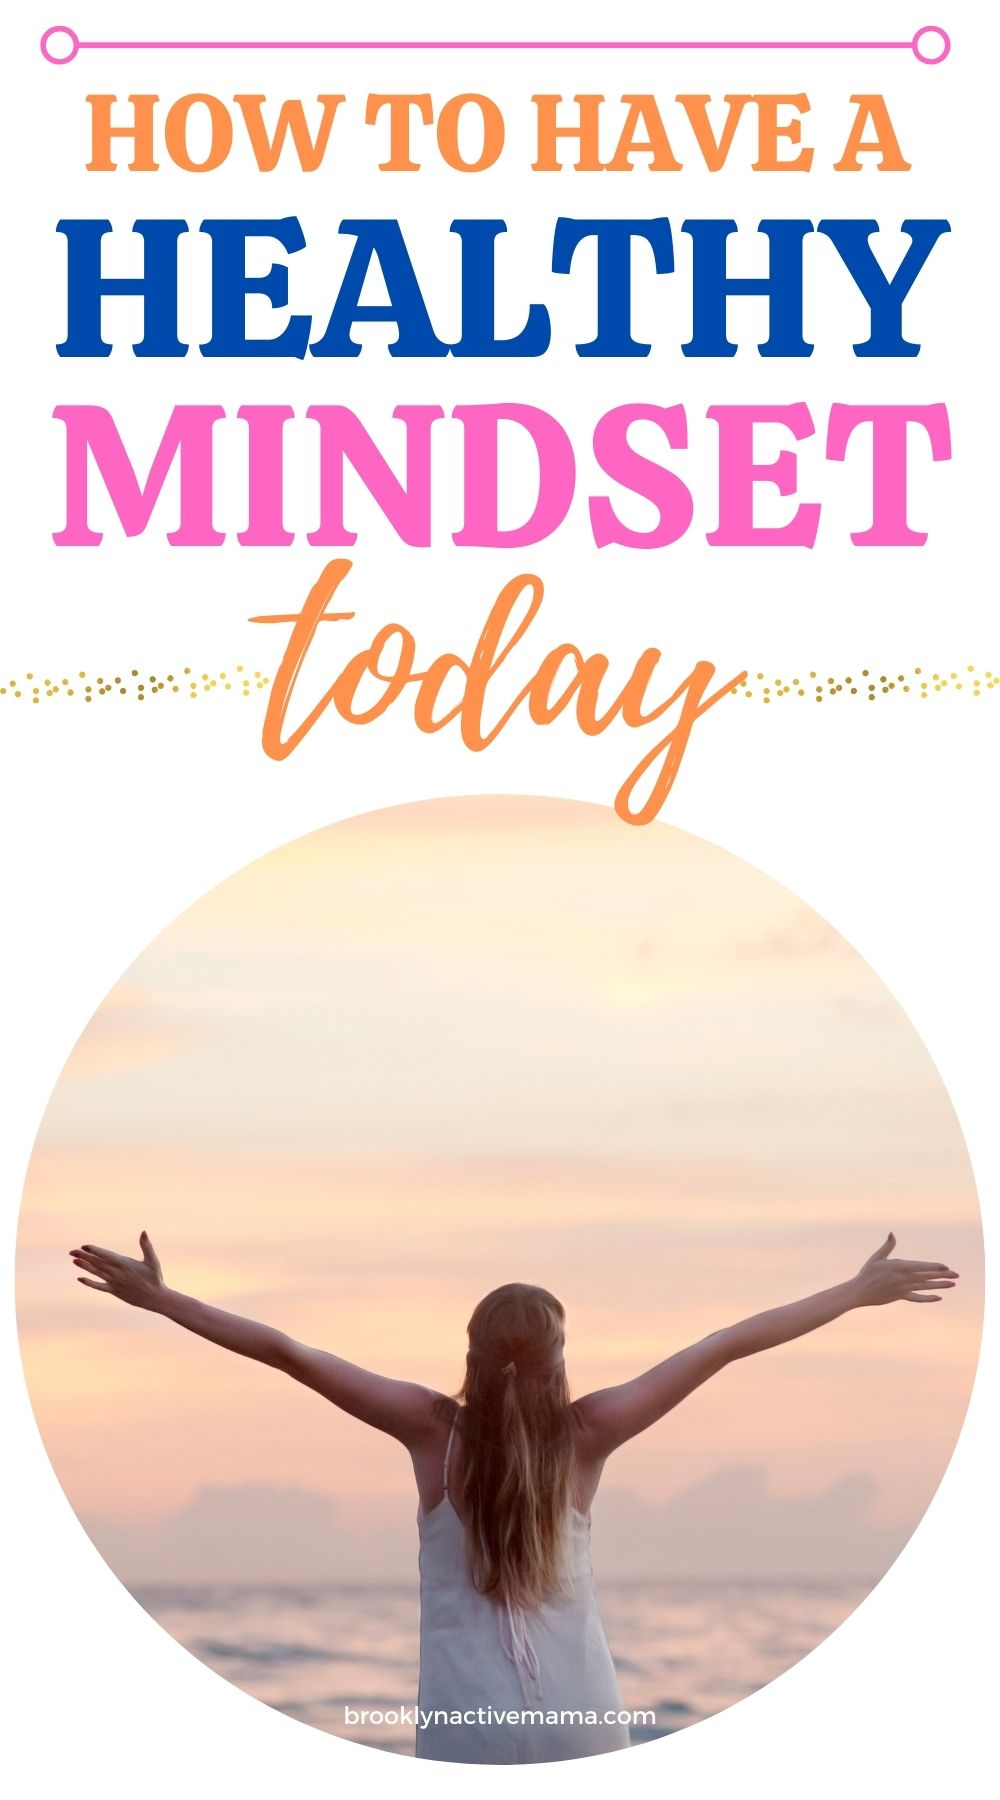 How to have a healthy mindset